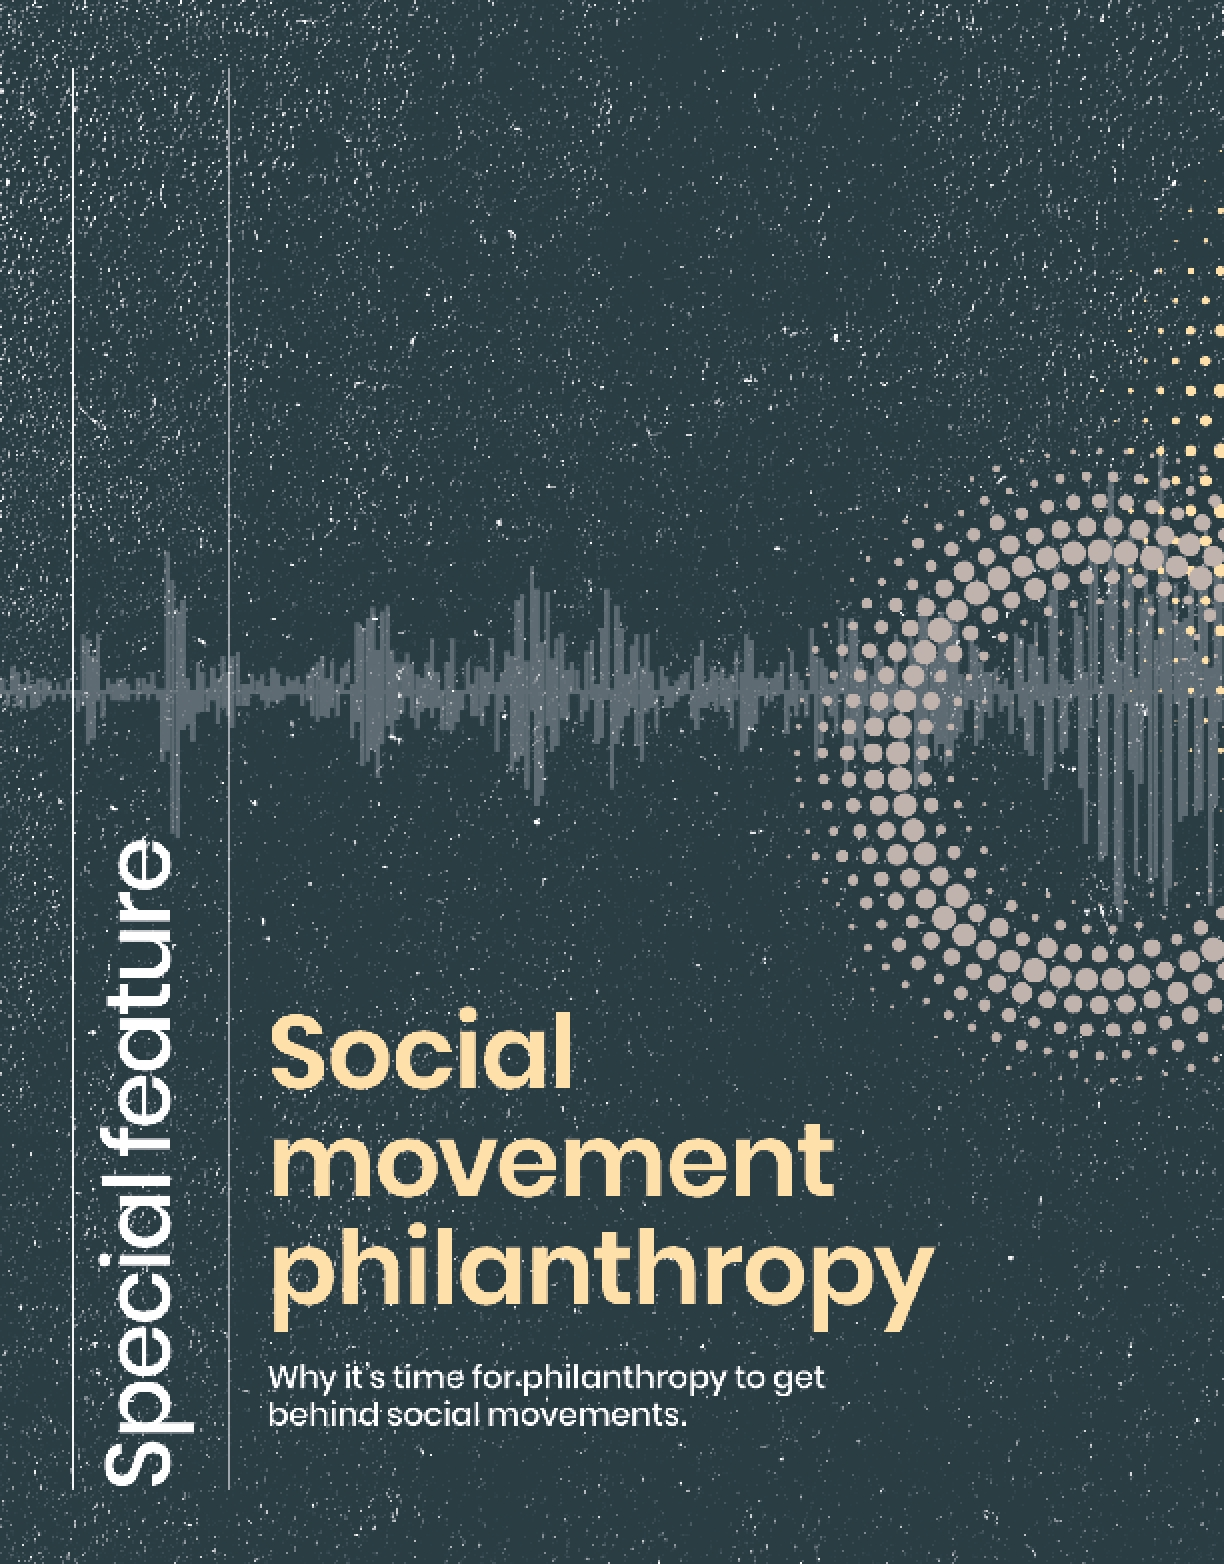 Social movement philanthropy - Special feature